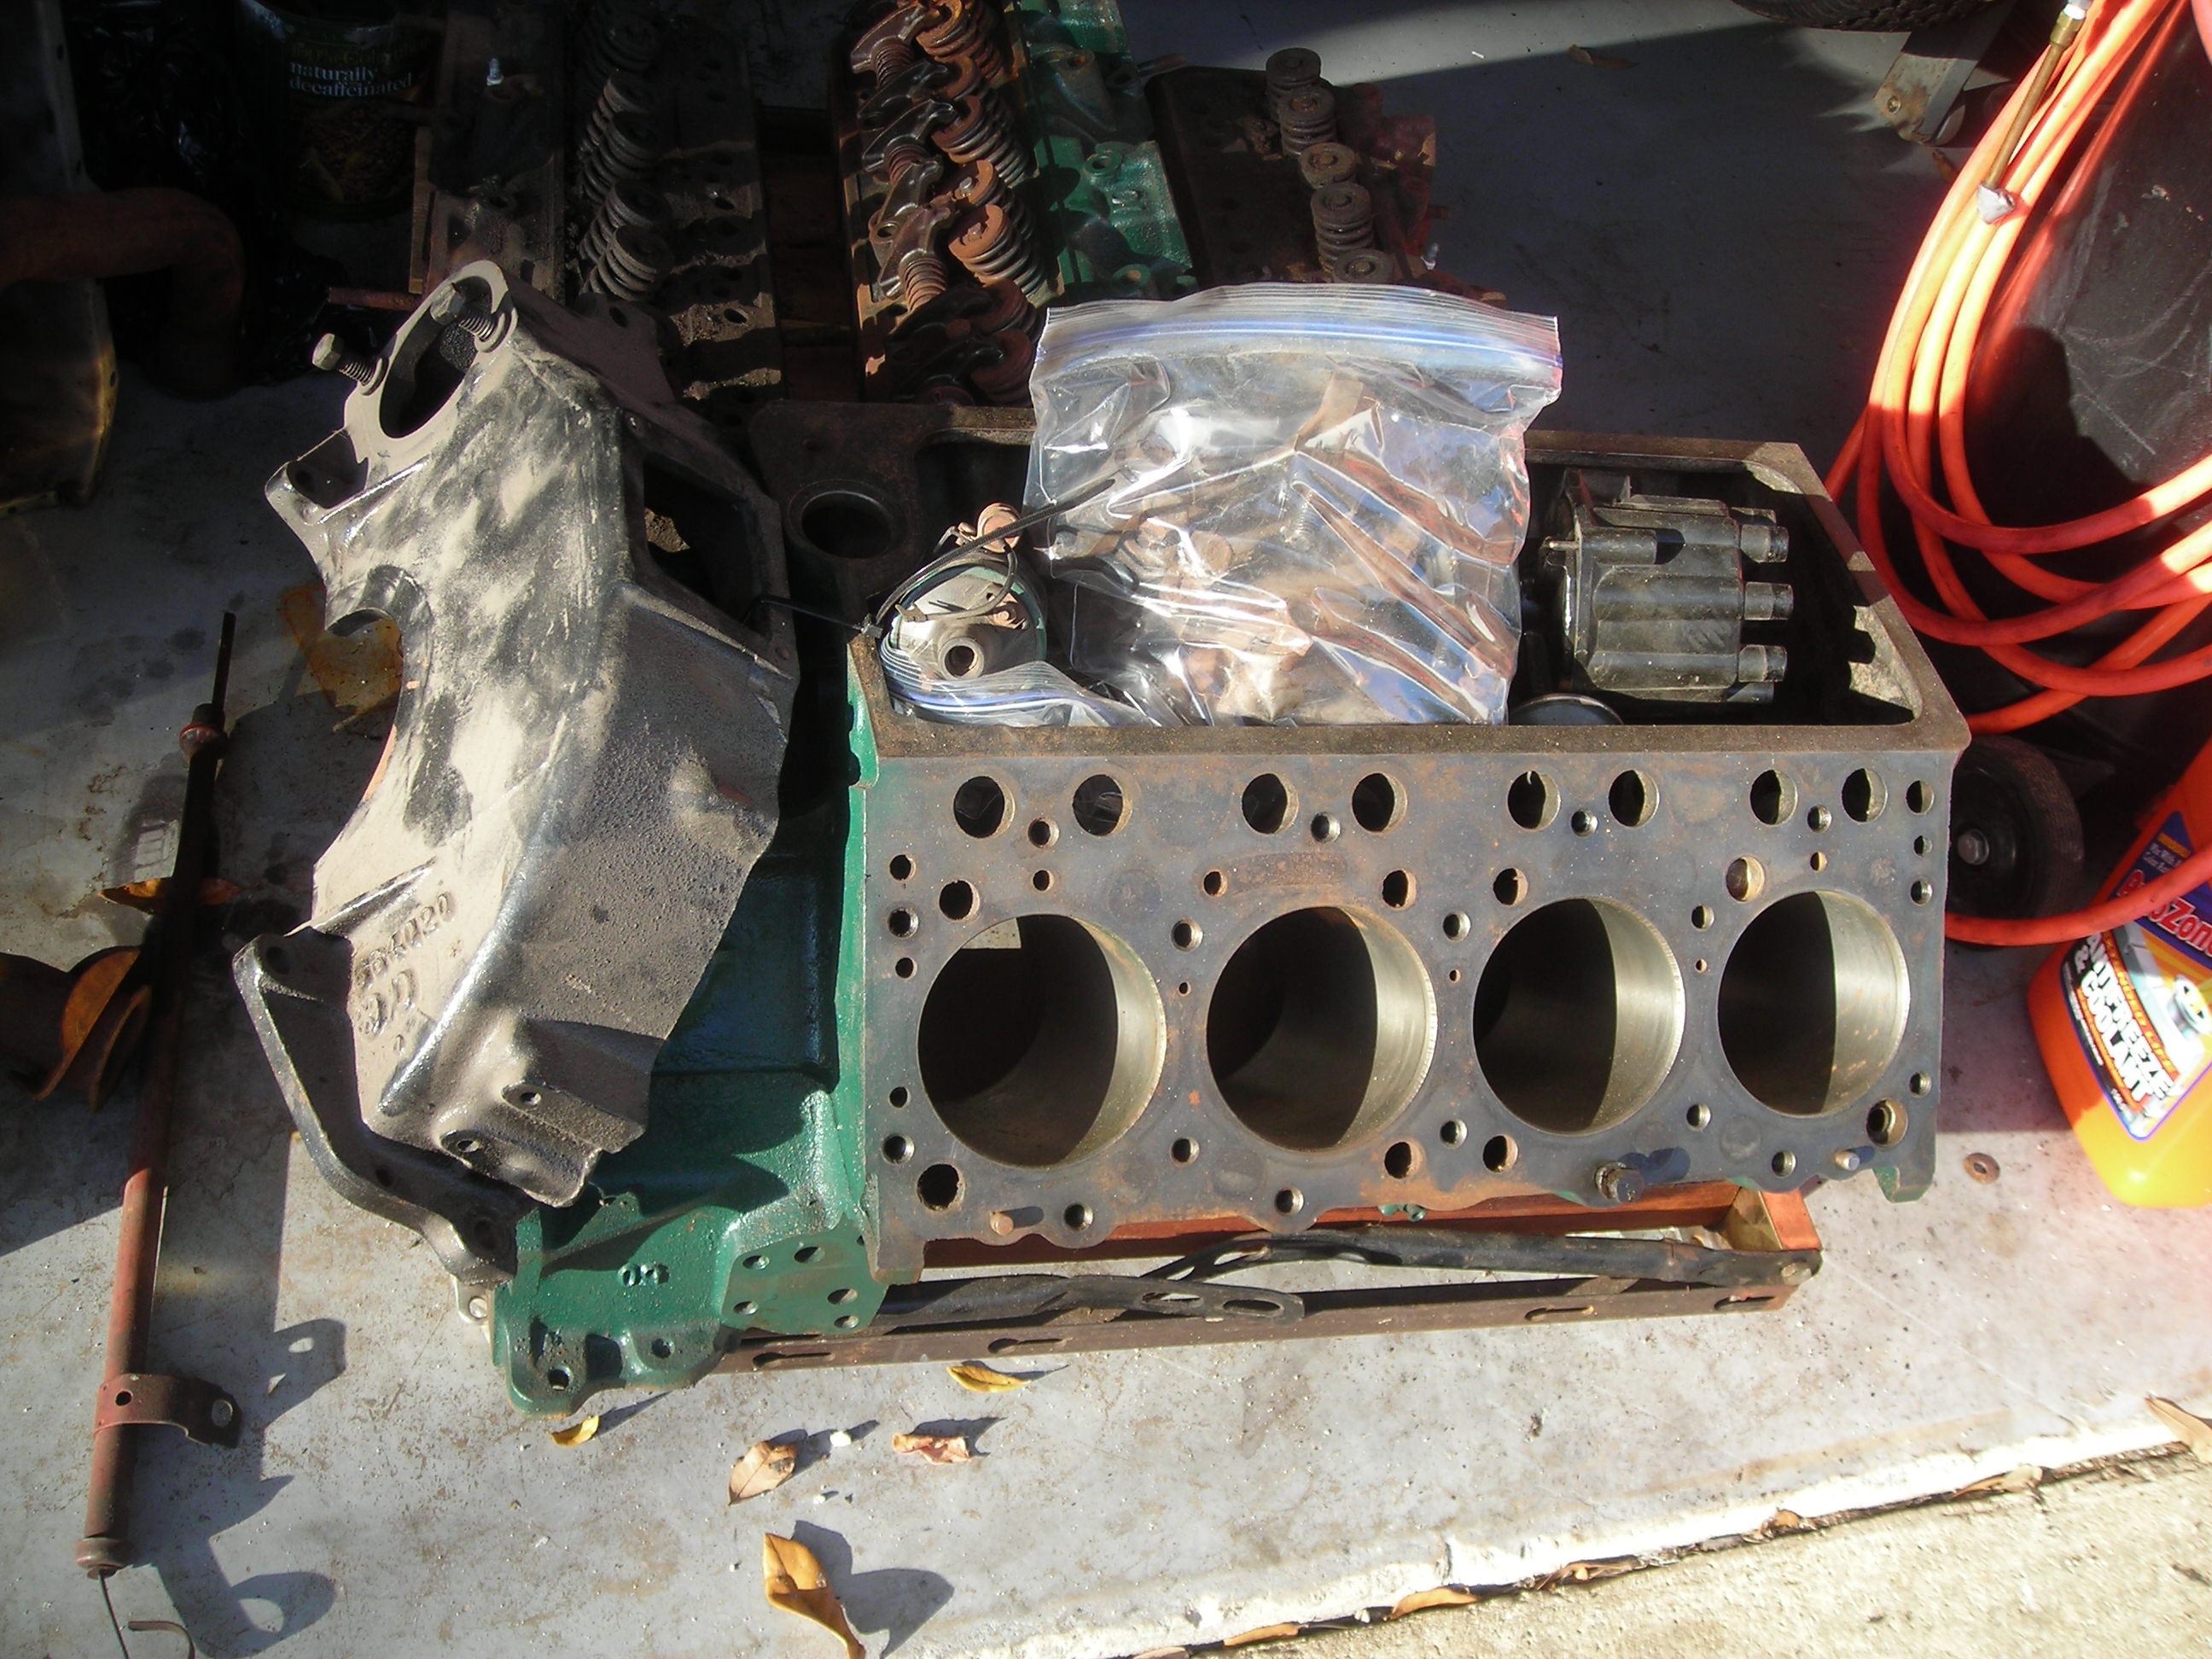 1956 Oldsmobile 324 complete engine (apart) | The H A M B